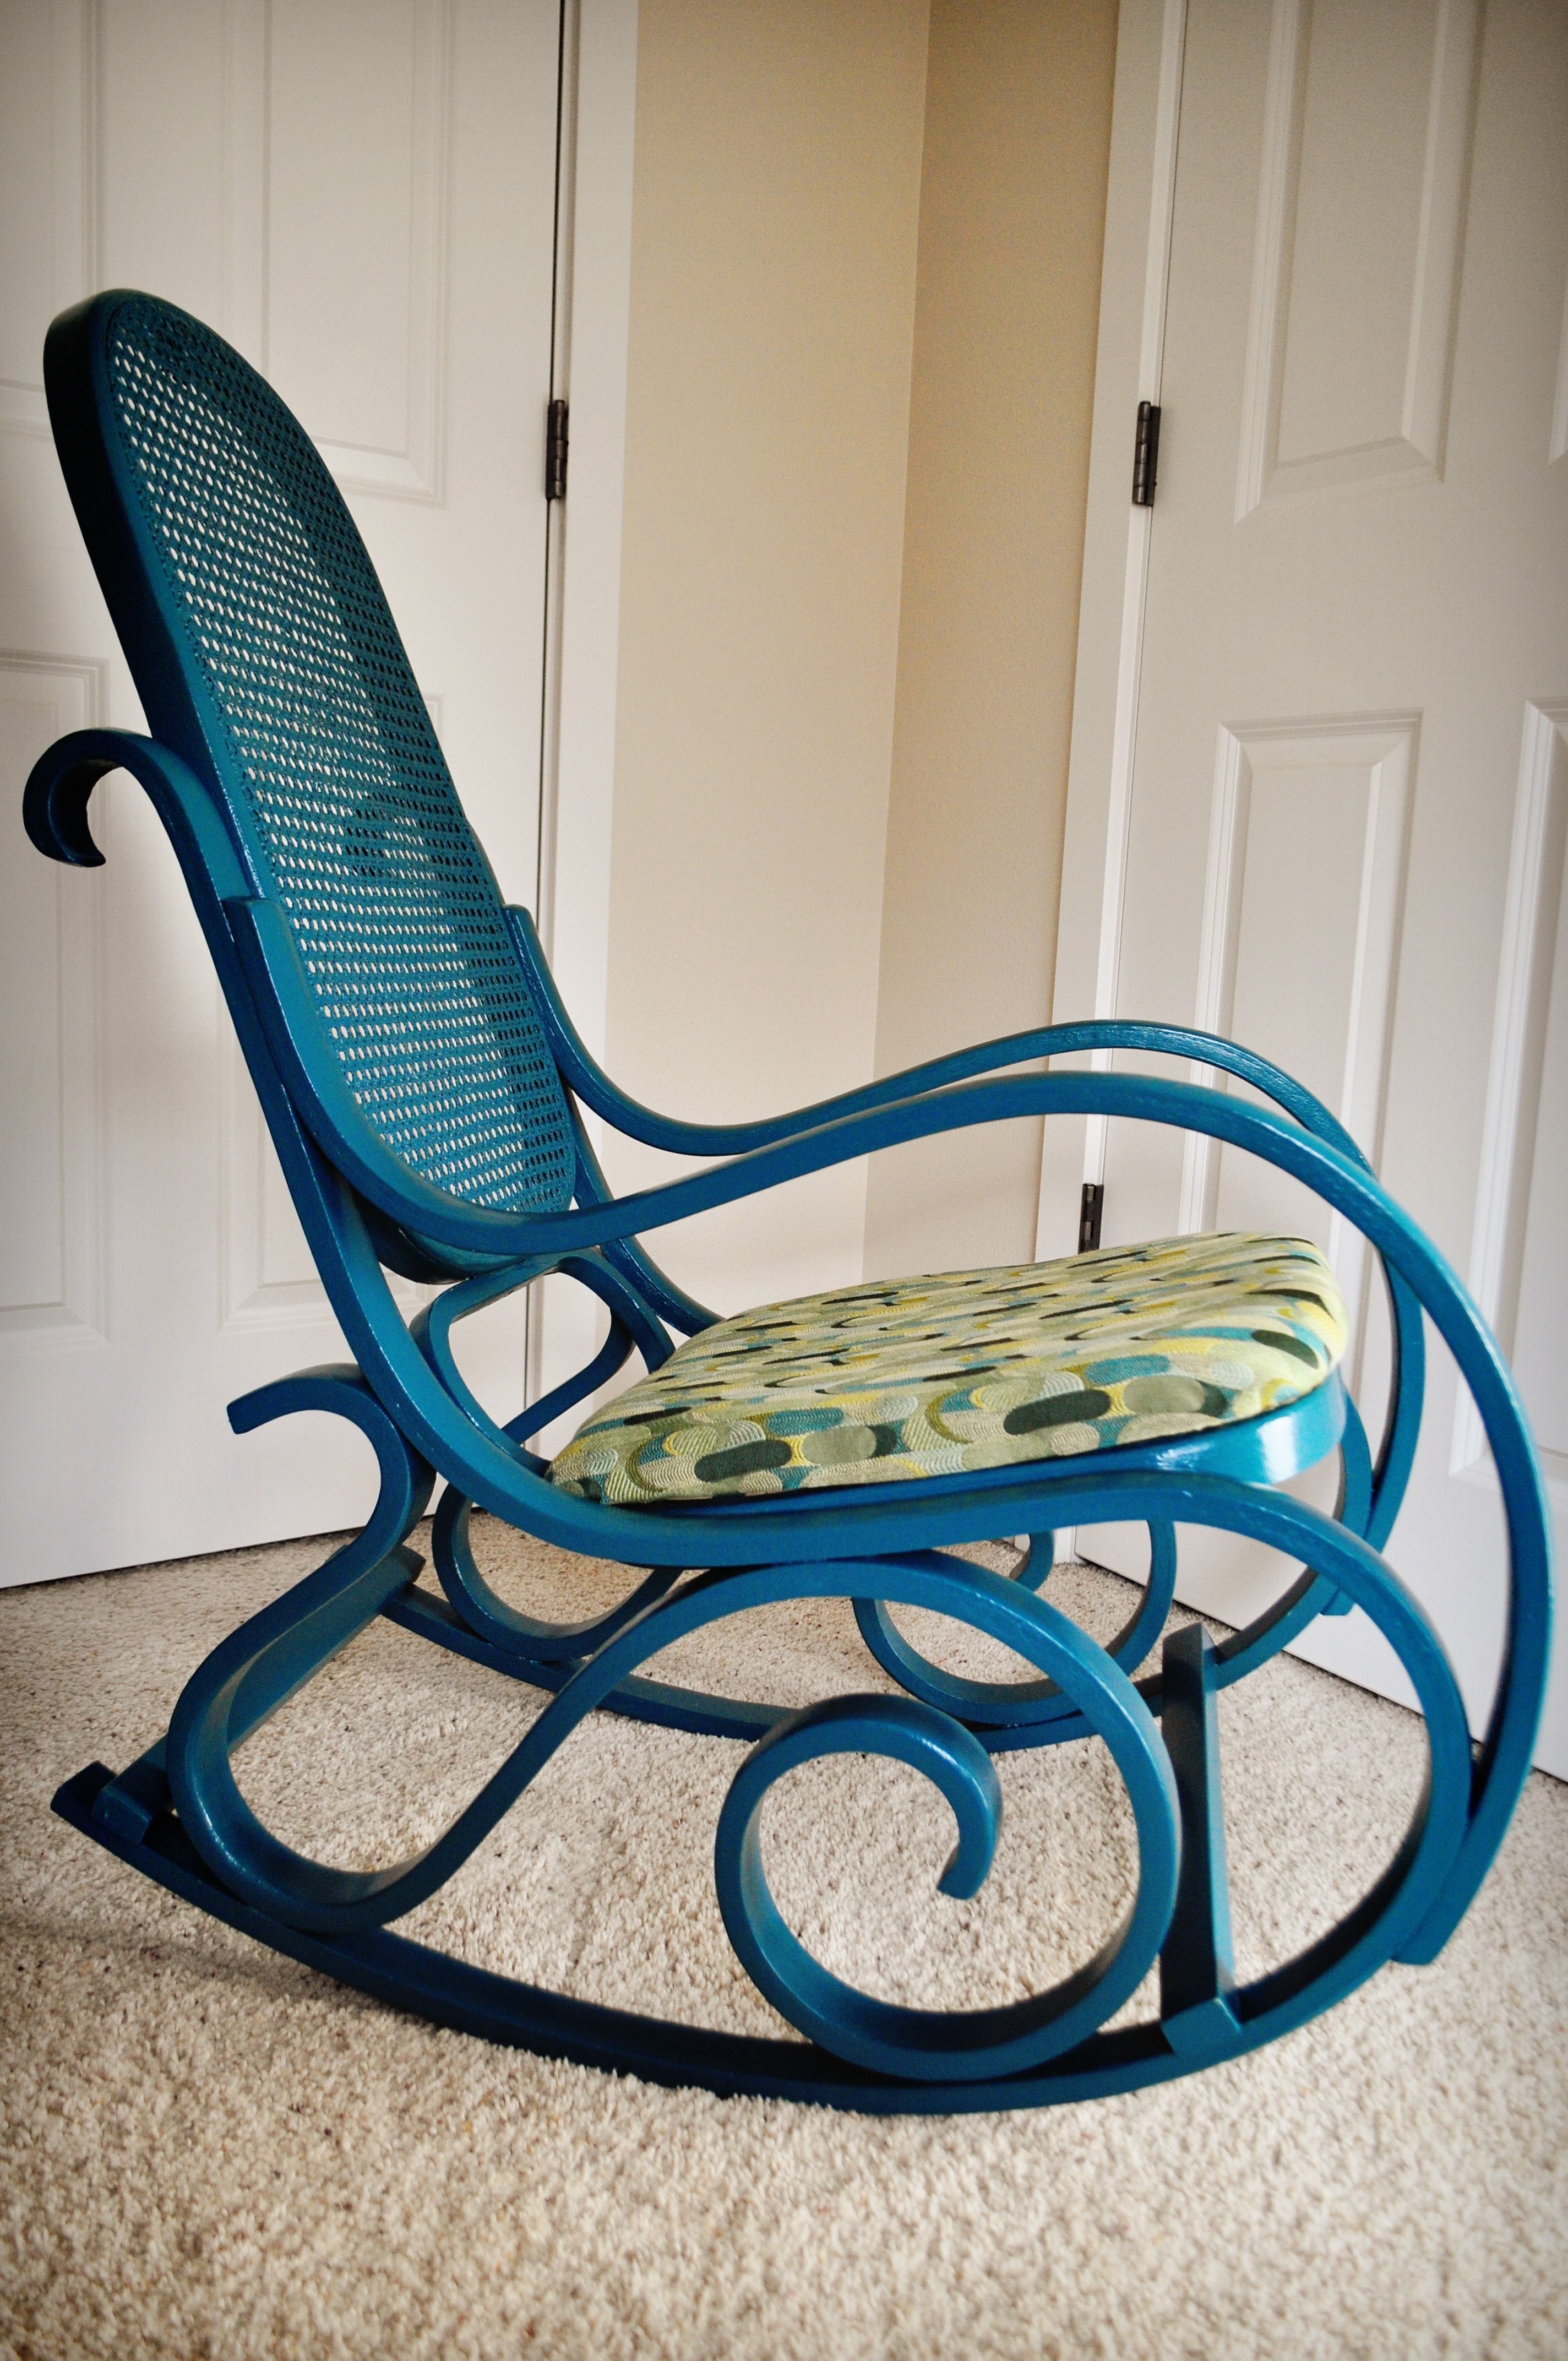 Home Intended For Stylish Intended For 2017 White Wicker Rocking Chairs (View 13 of 15)